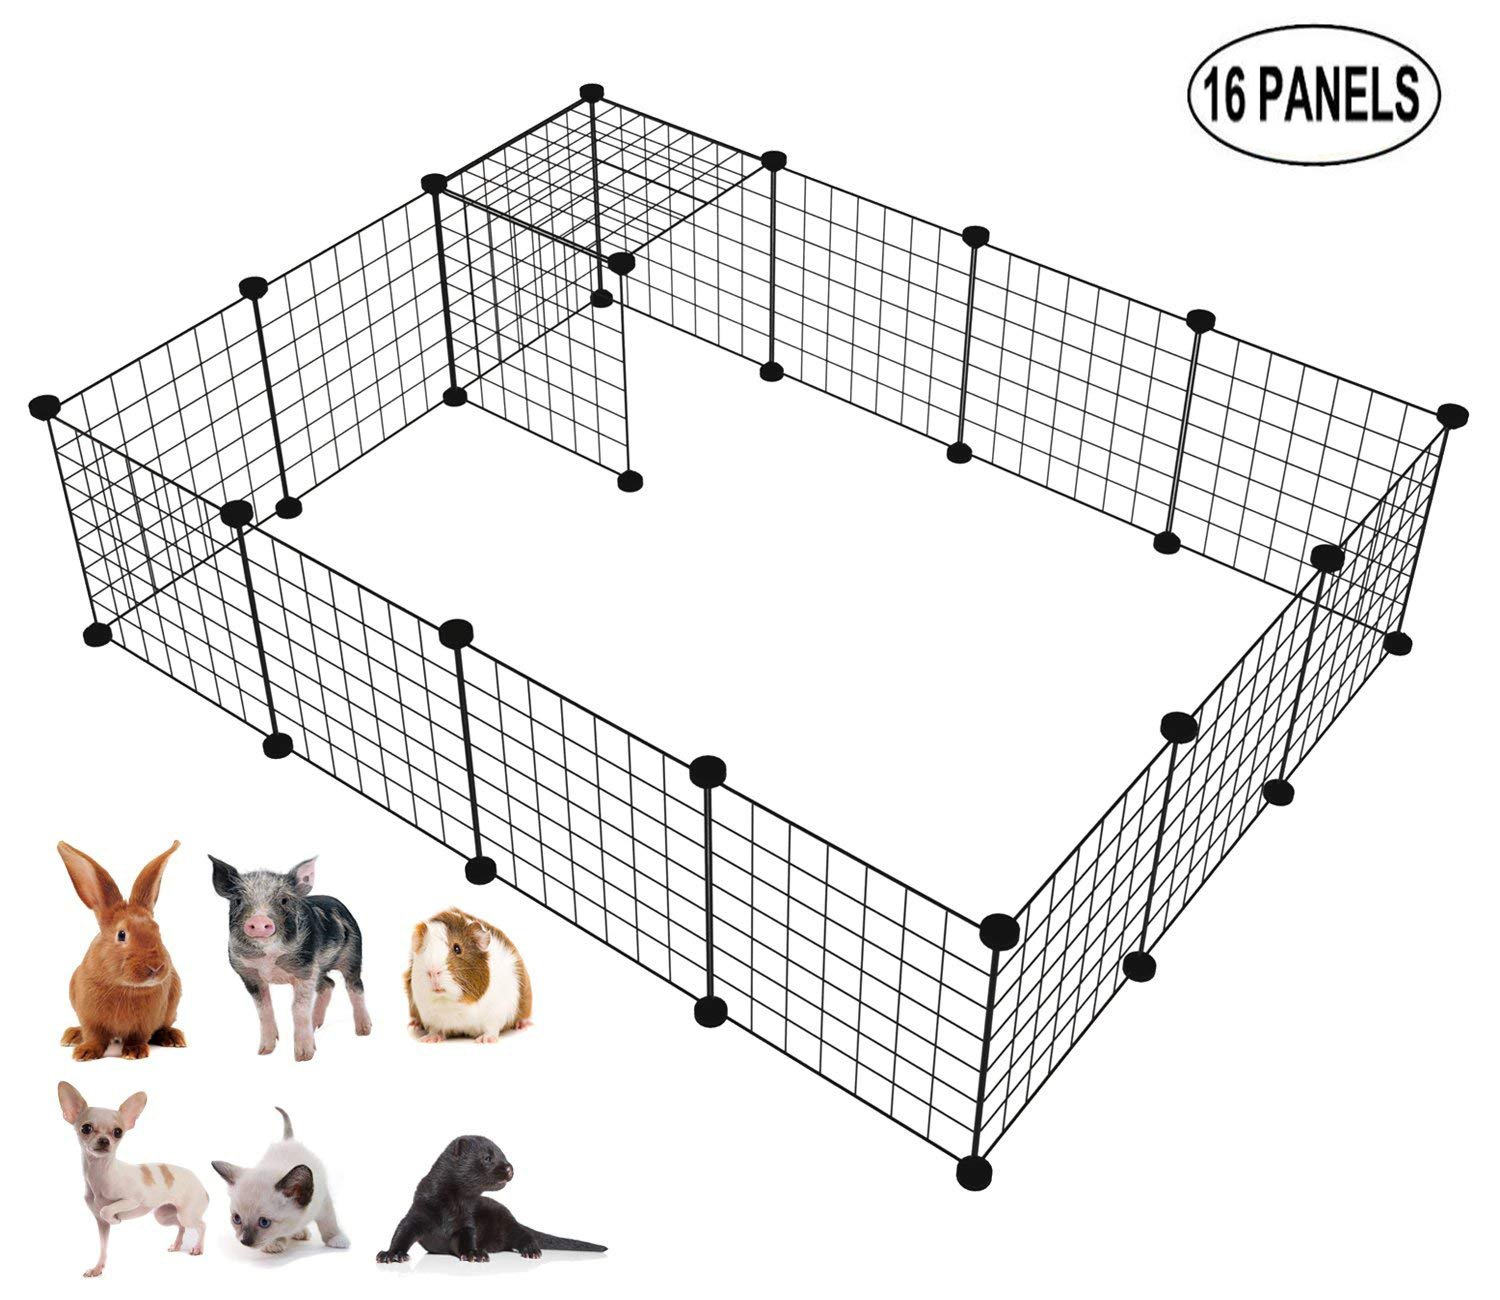 LANGXUN 16pcs Metal Wire Storage Cubes Organizer, DIY Small Animal Cage Rabbit, Guinea Pigs, Puppy | Pet Products Portable Metal Wire Yard Fence (Black, 16 Panels) by LANGXUN (Image #1)